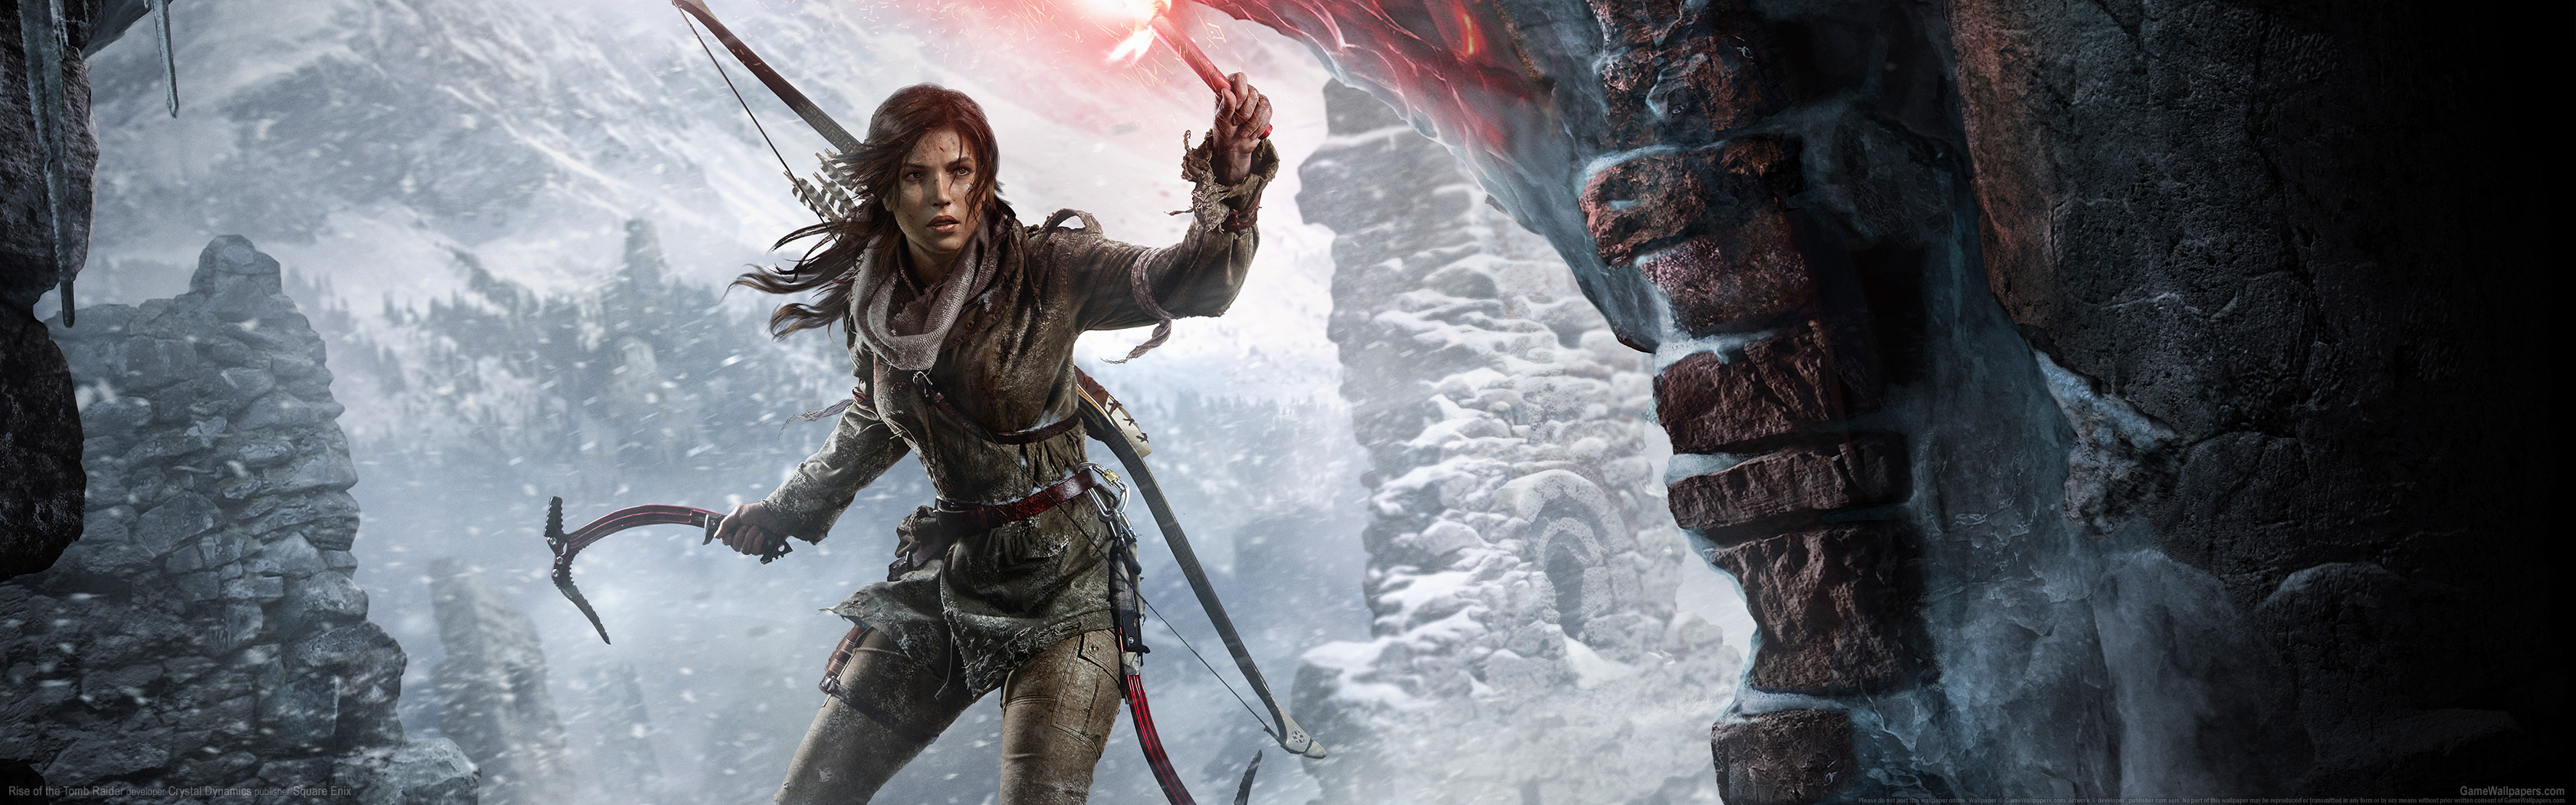 Rise of the Tomb Raider wallpaper 11 3360x1050